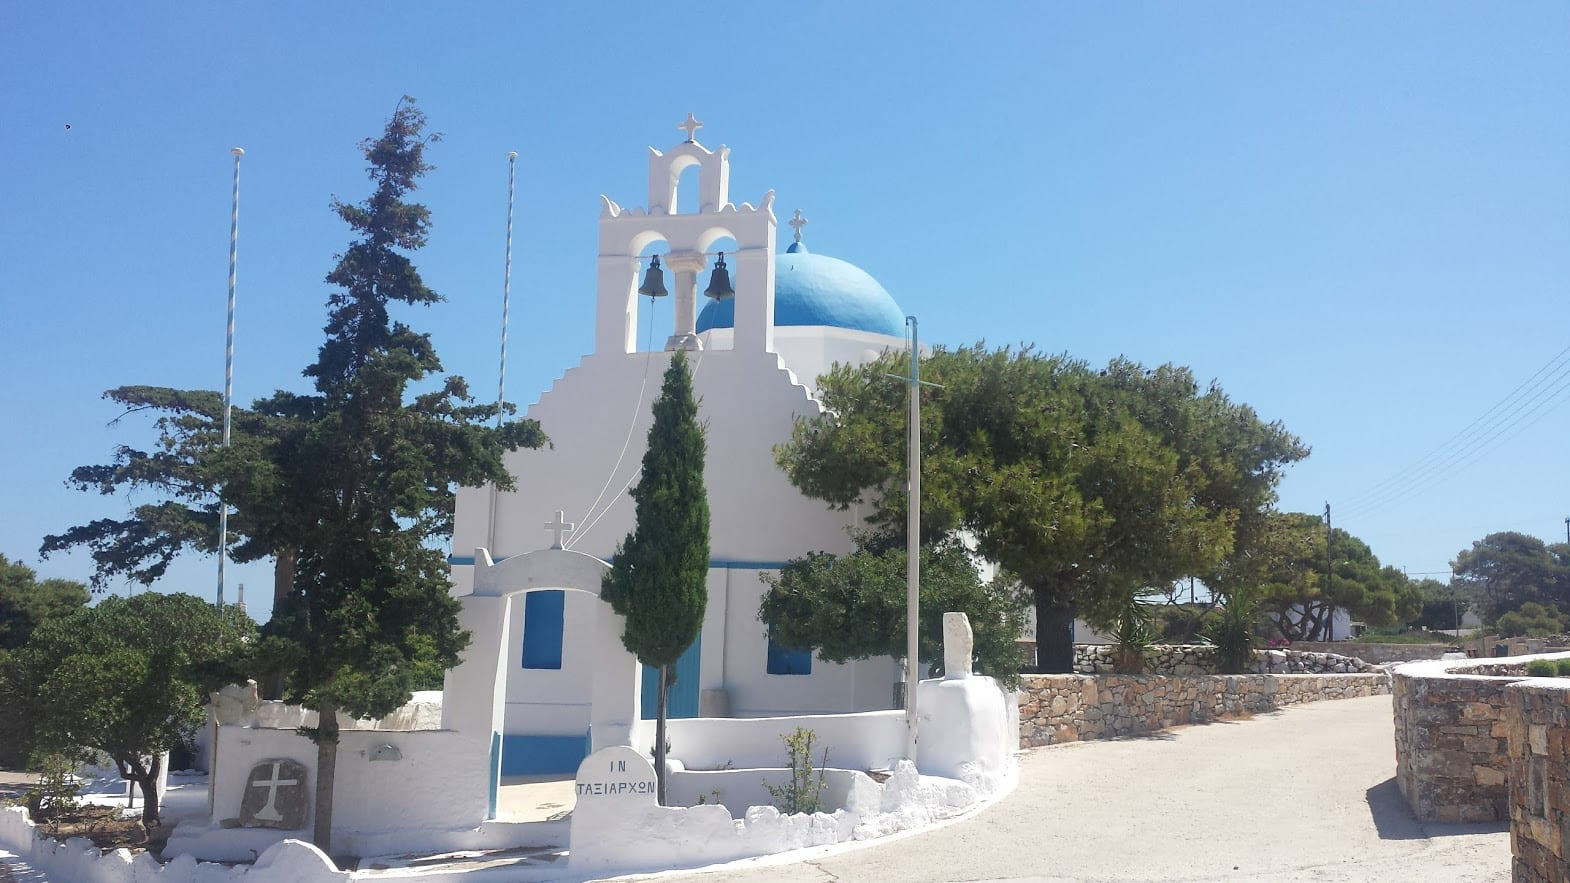 A church on the island of Iraklia in Greece